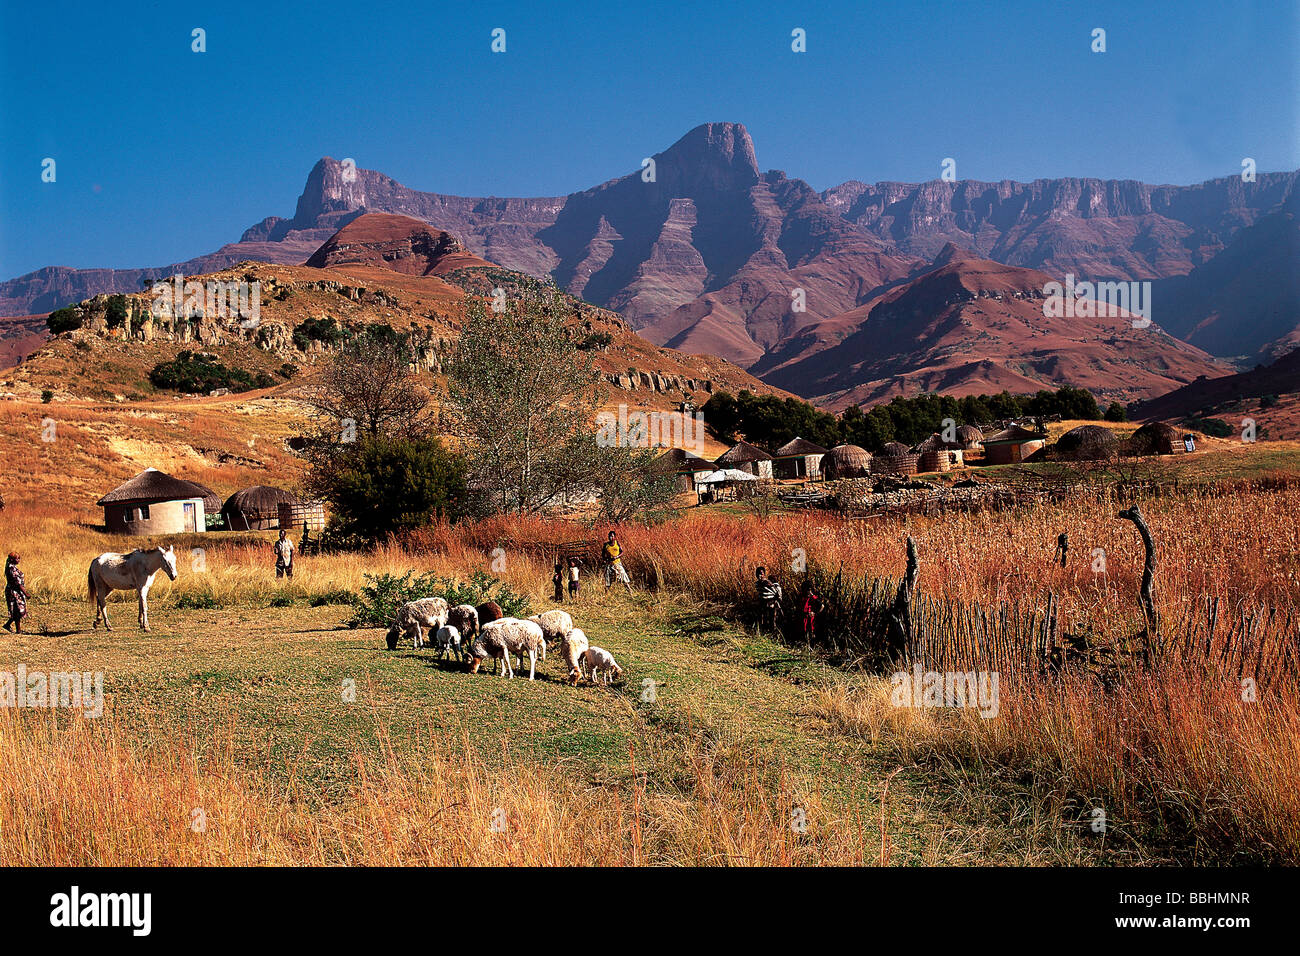 a rural scene against a mountain backdrop is typical of the